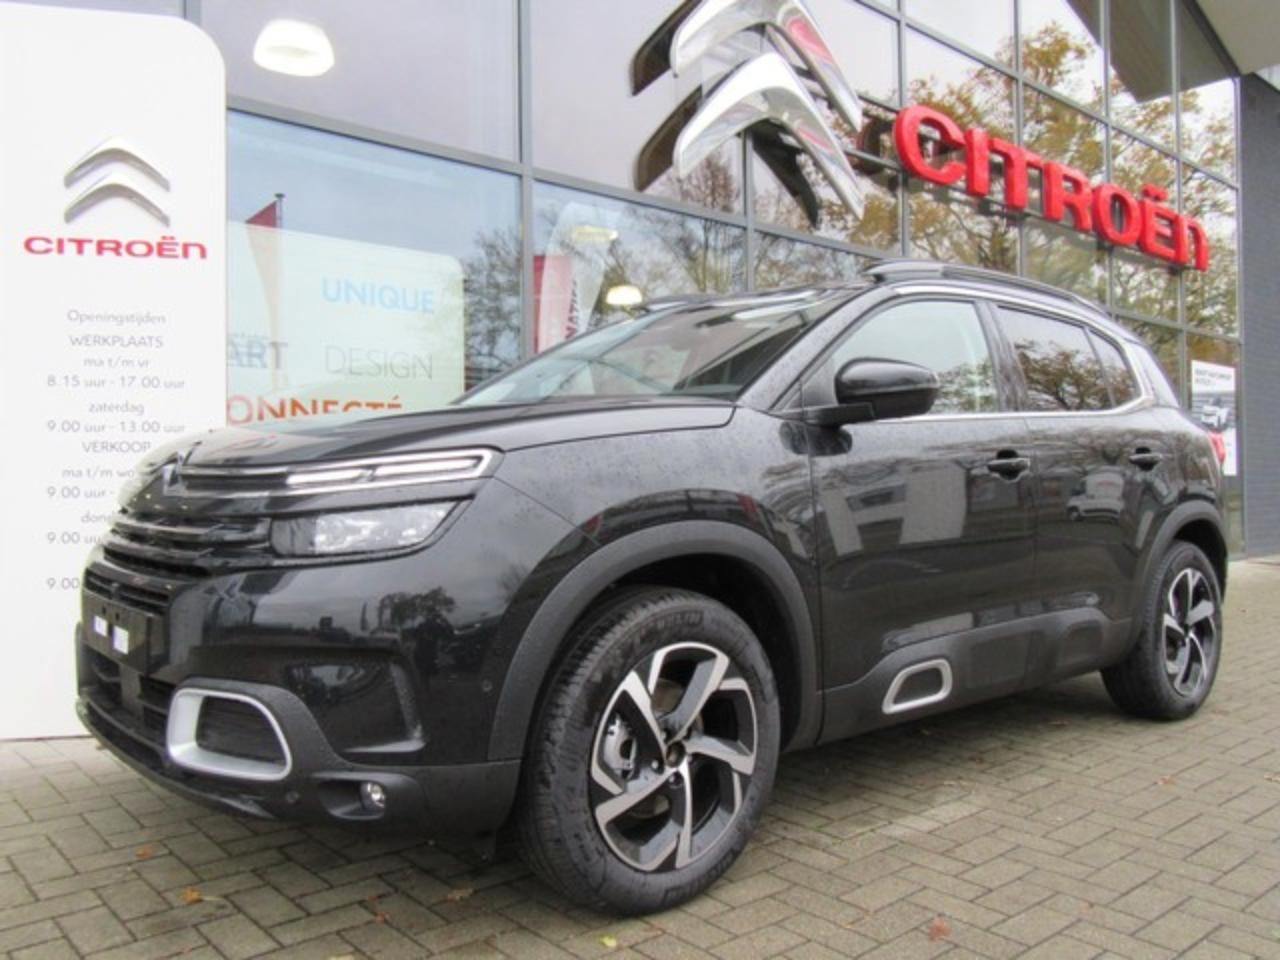 Citroën C5 AIRCROSS PureTech 130PK BUSINESS PLUS AUTOMAAT/NAVI/CAMERA/